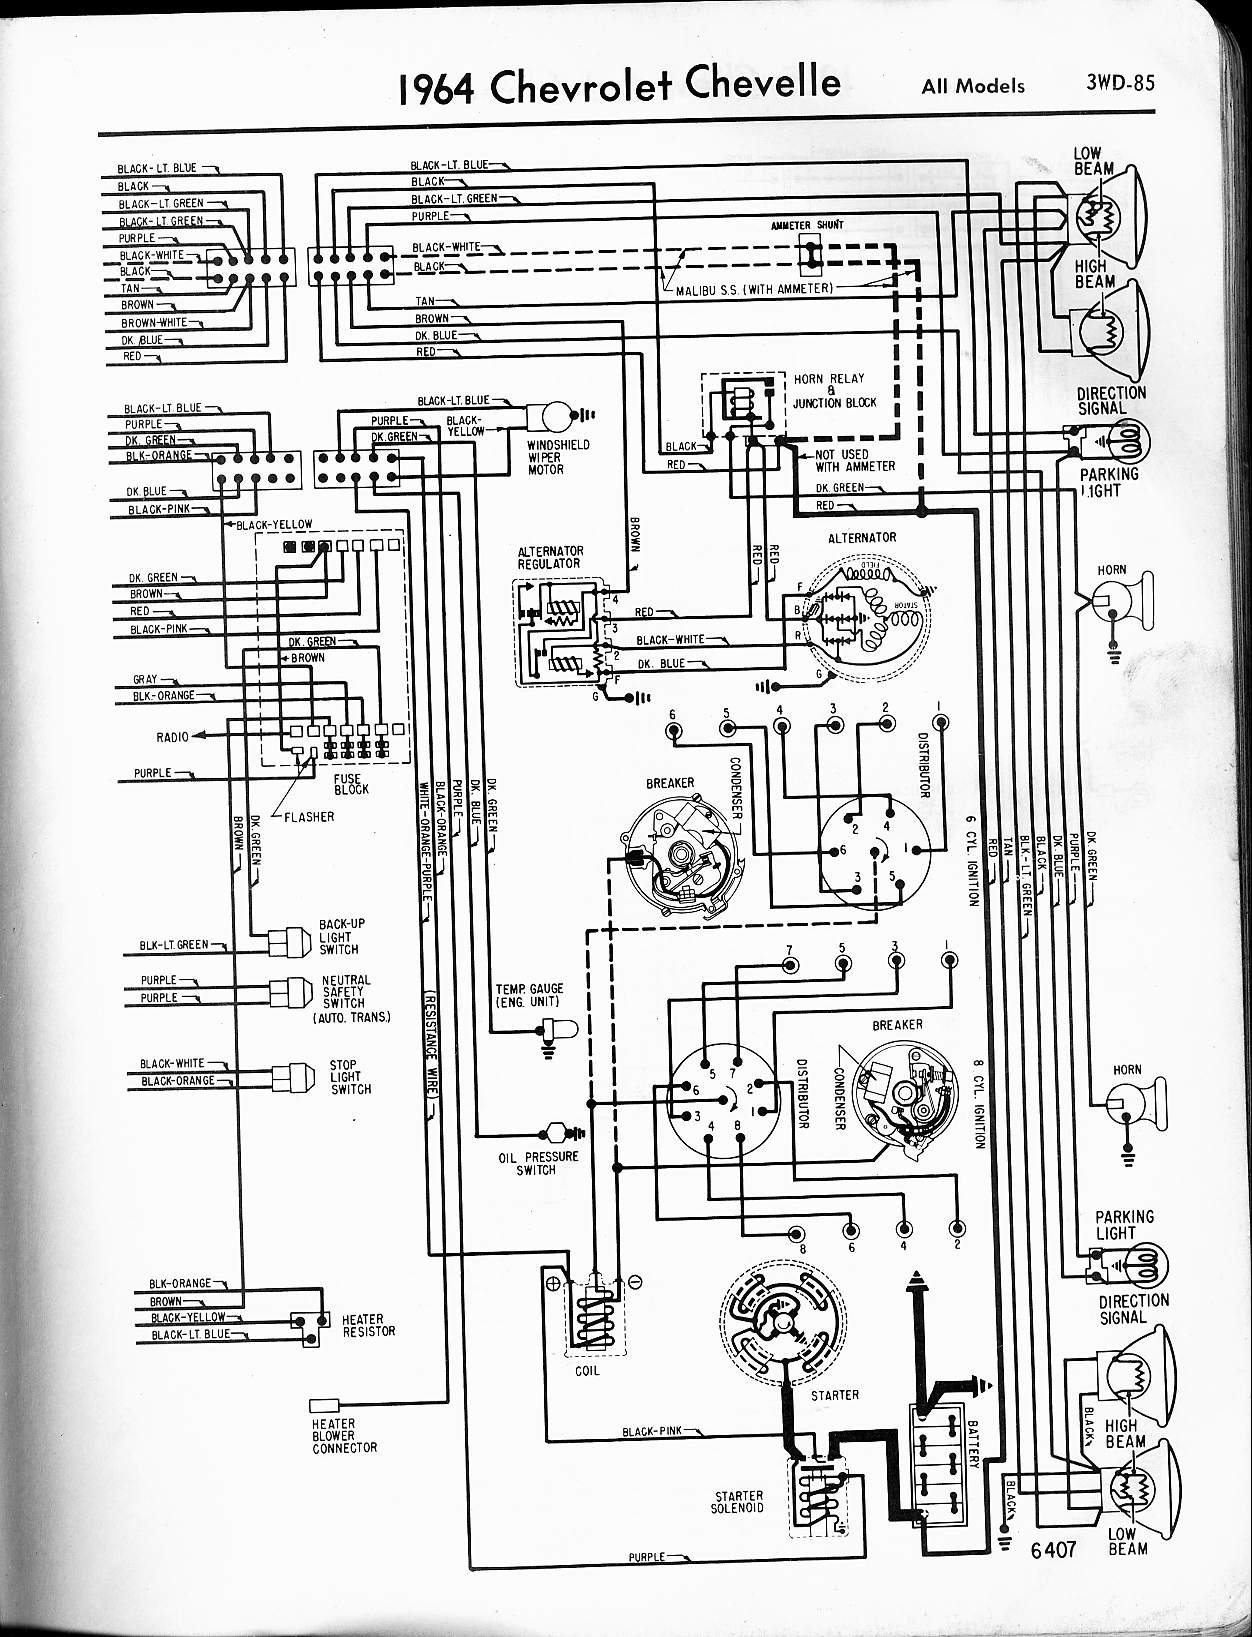 chevy diagrams rh wiring wizard com 1965 Chevelle Wiring Diagram 1965 Chevelle Wiring Diagram